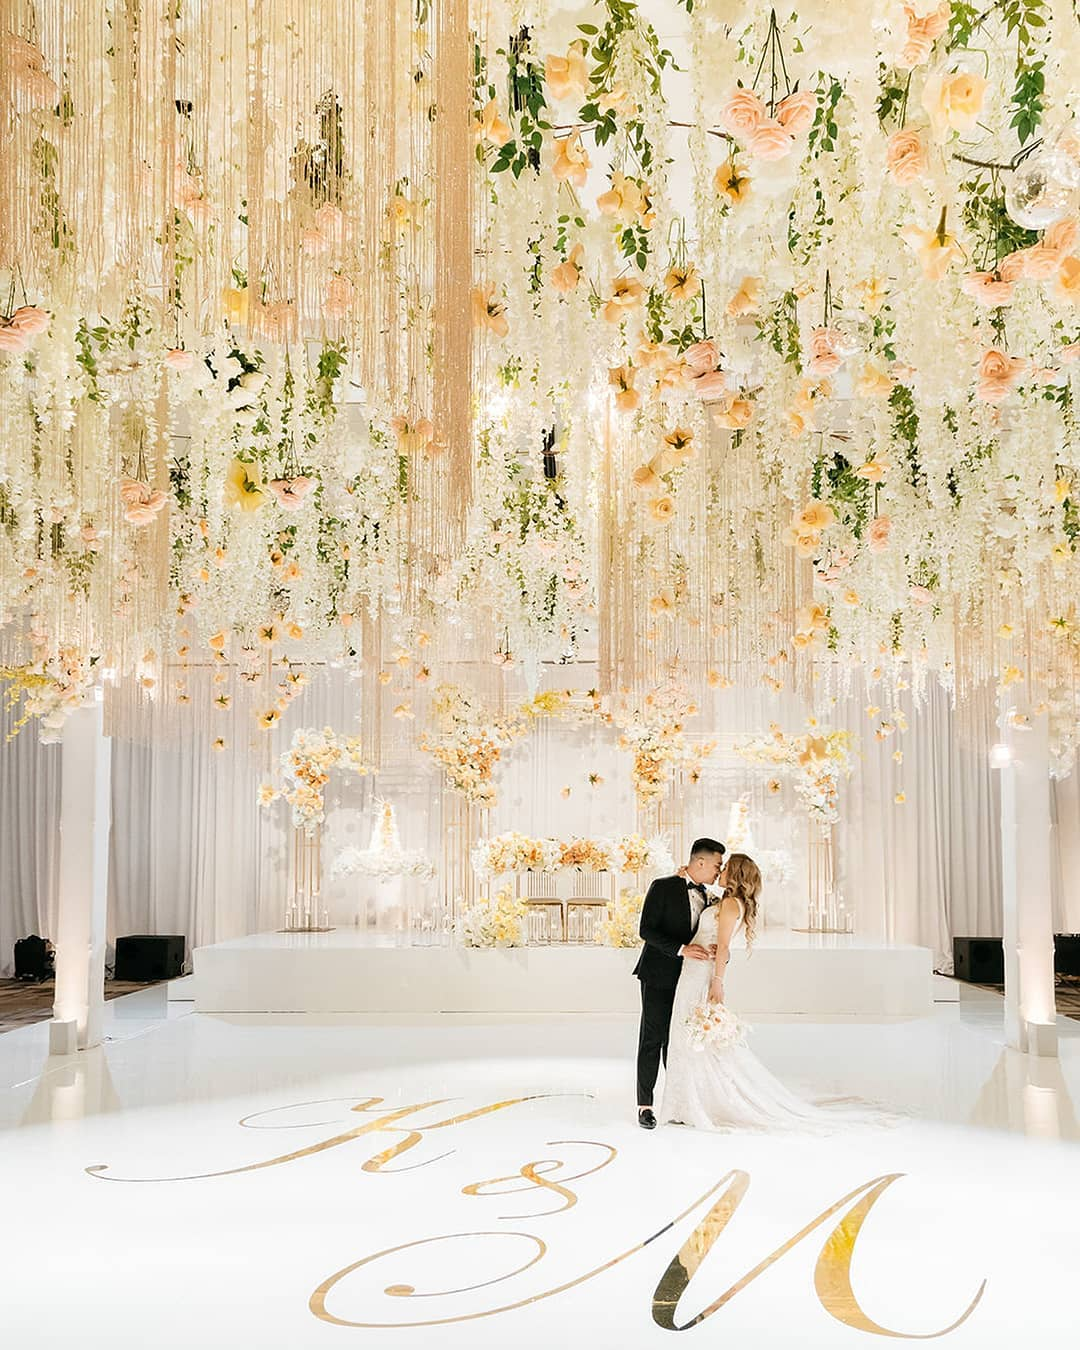 glamorous white banquet hall wedding with hanging flowers and up lightings